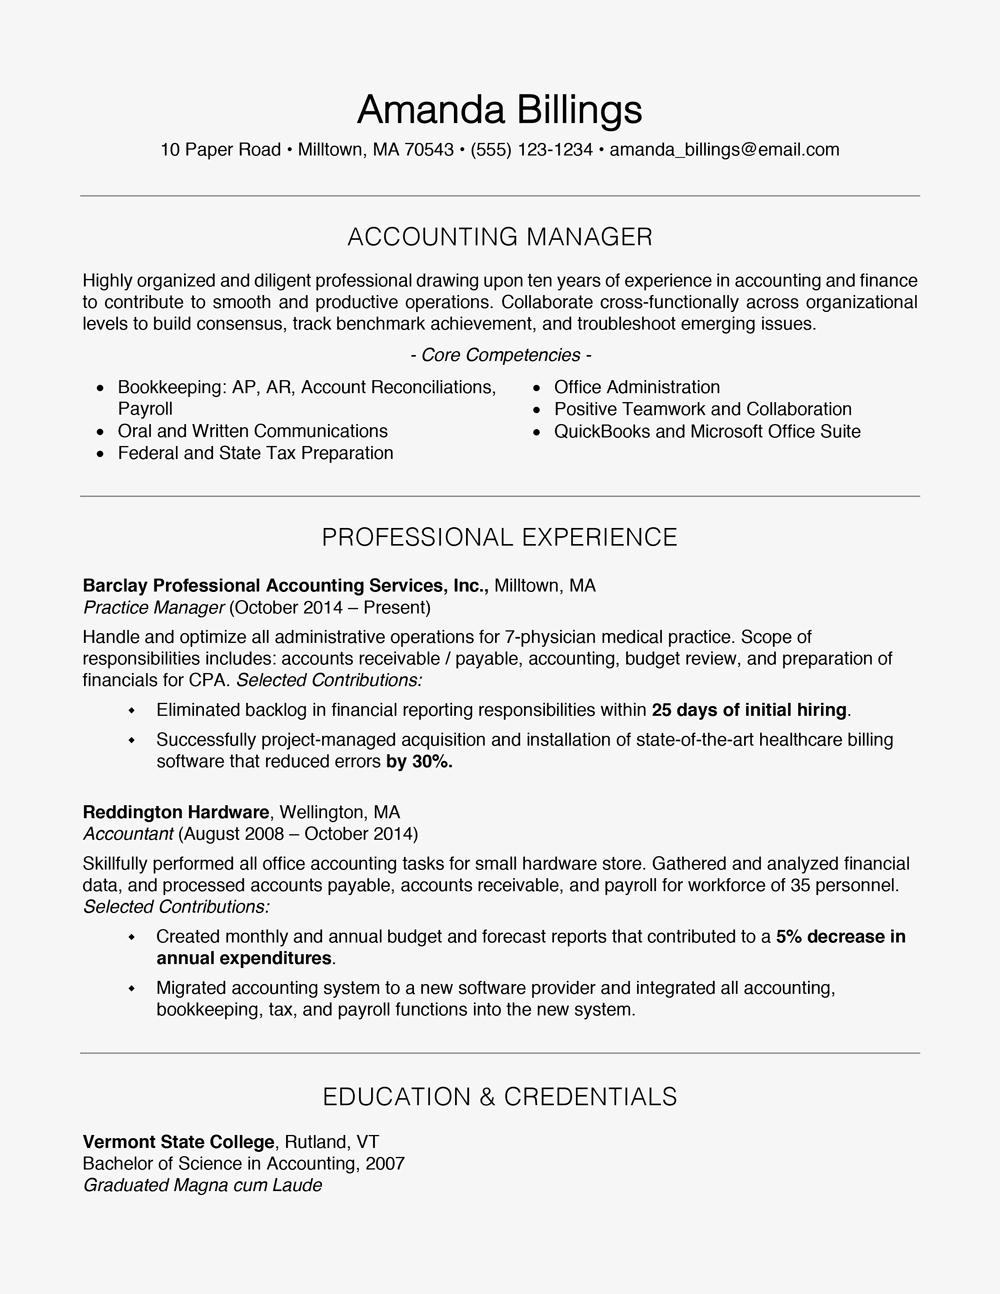 Core Competencies Resume Examples - 100 Free Professional Resume Examples and Writing Tips